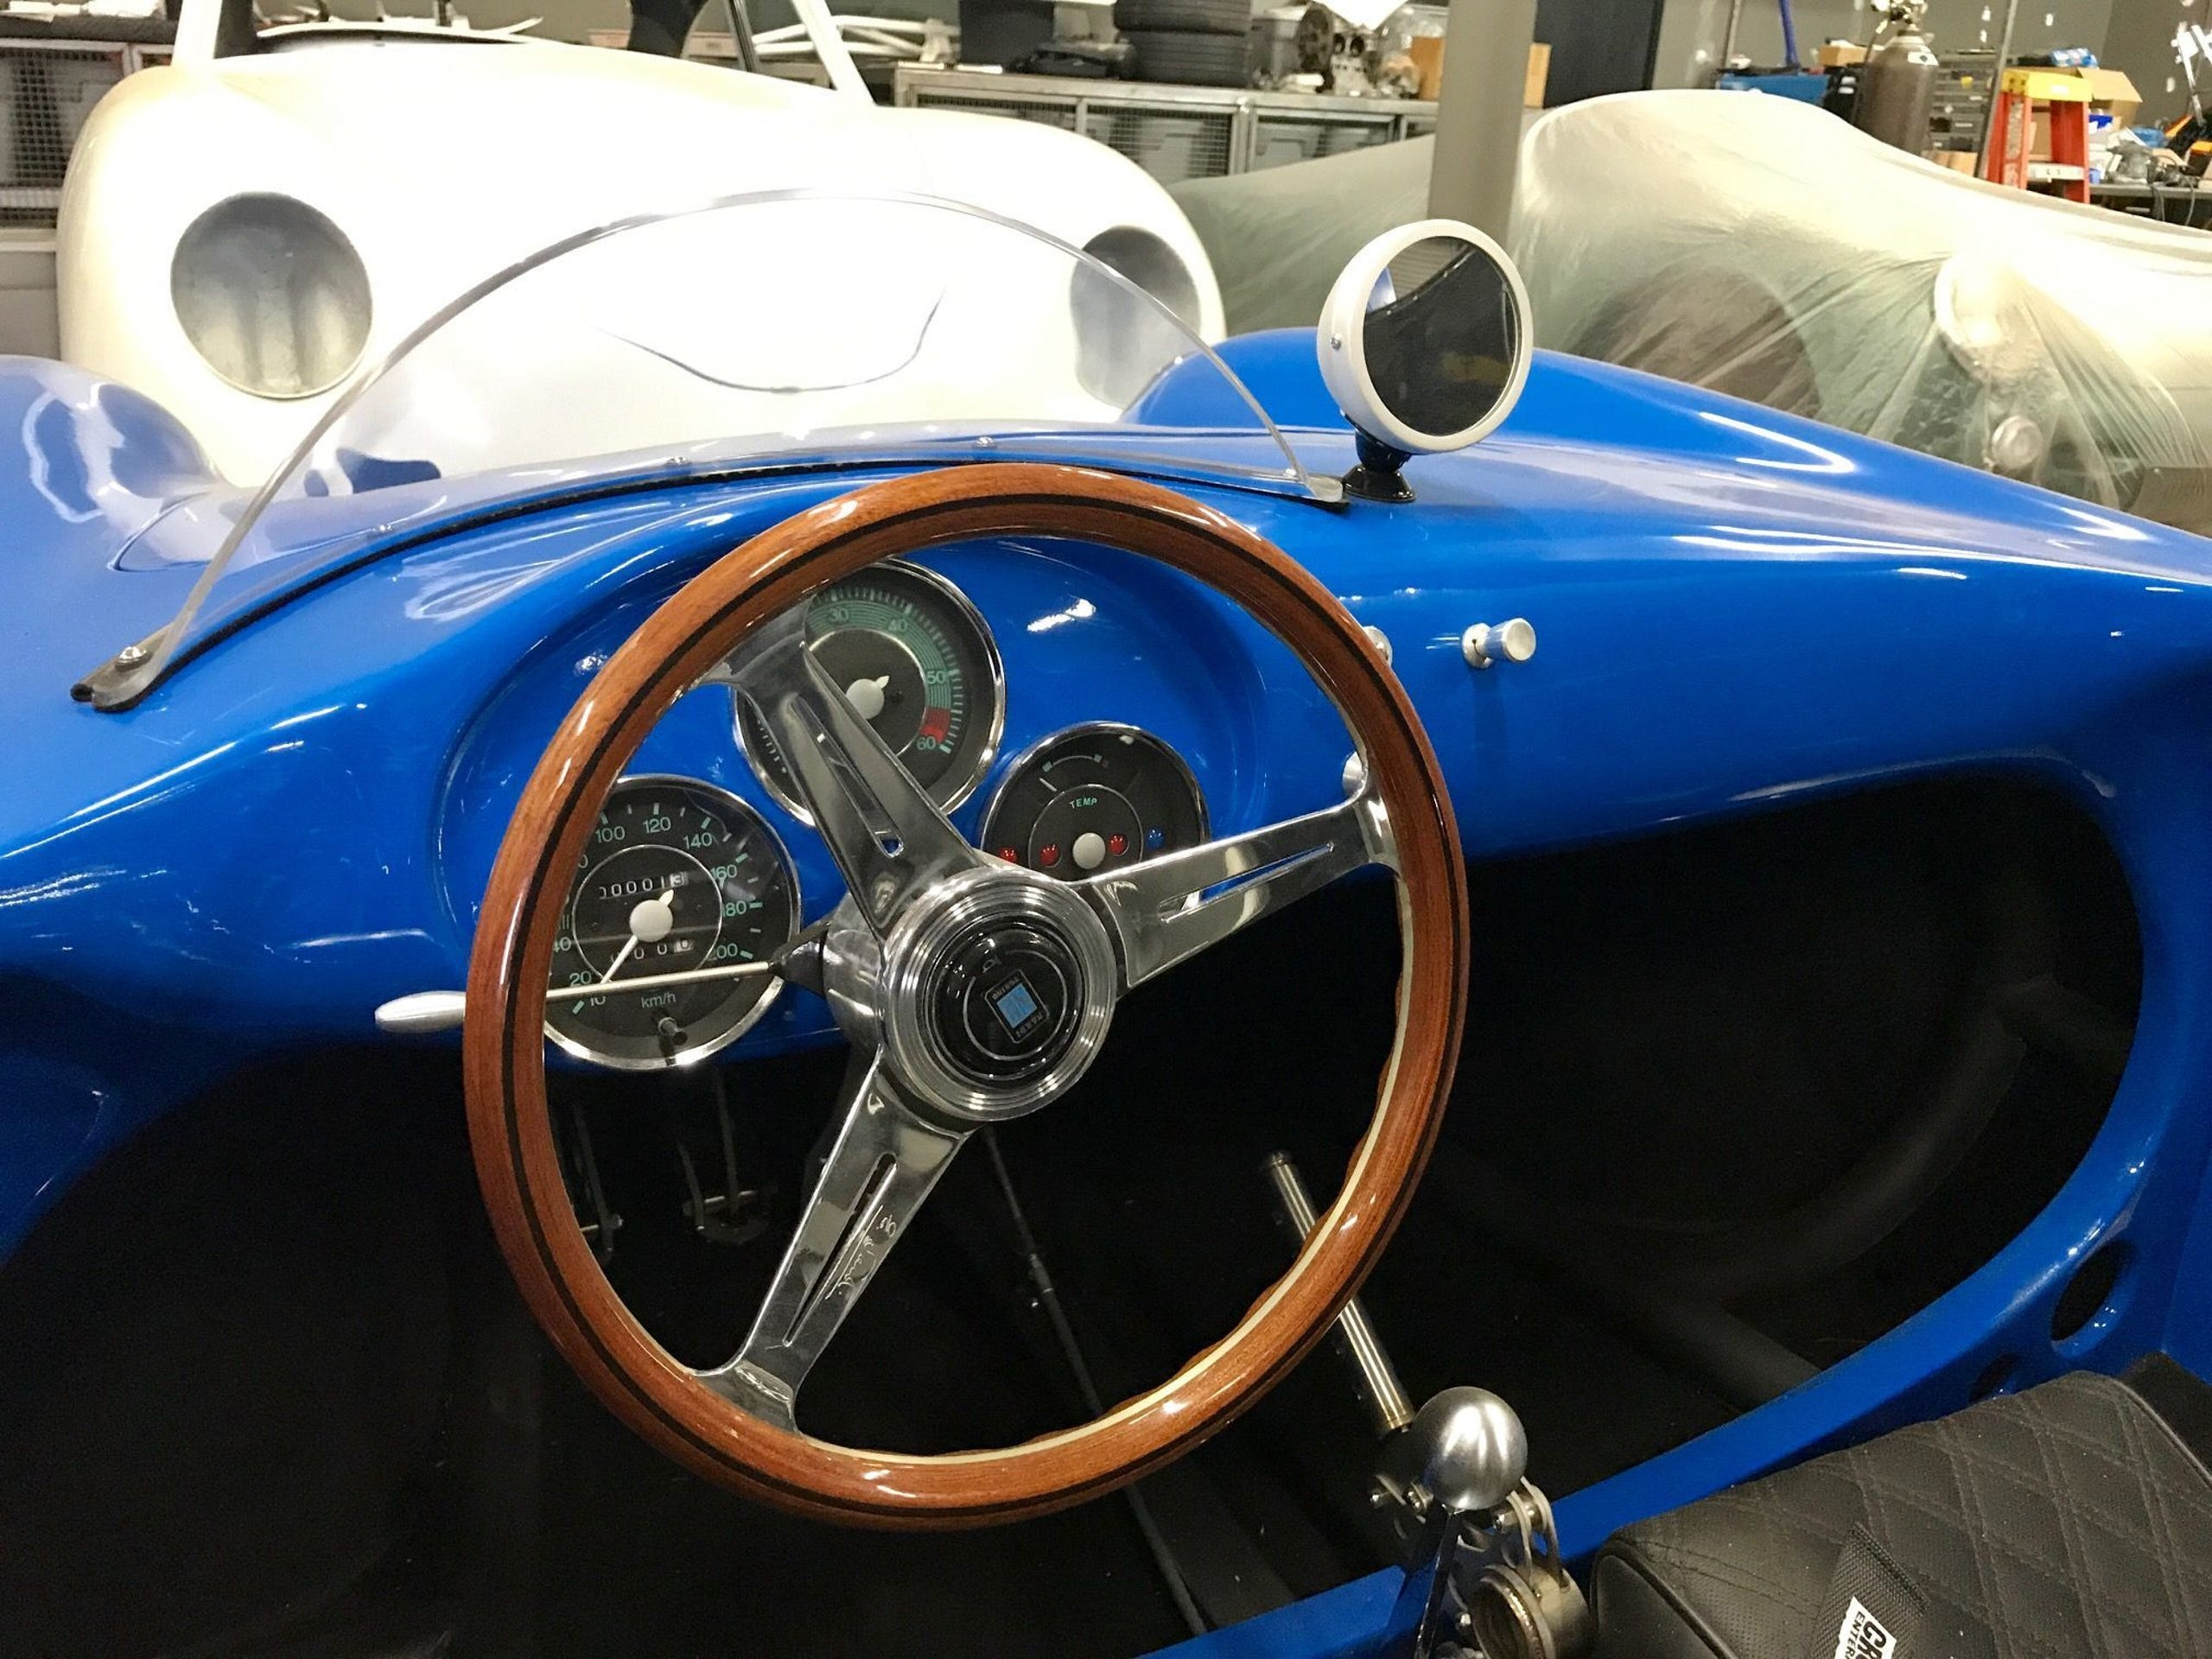 Seduction Motorsports' tribute to the Porsche 550 Spyder includes period-correct touches such as simple gauges, a wooden Nardi steering wheel and a circular rear view mirror.